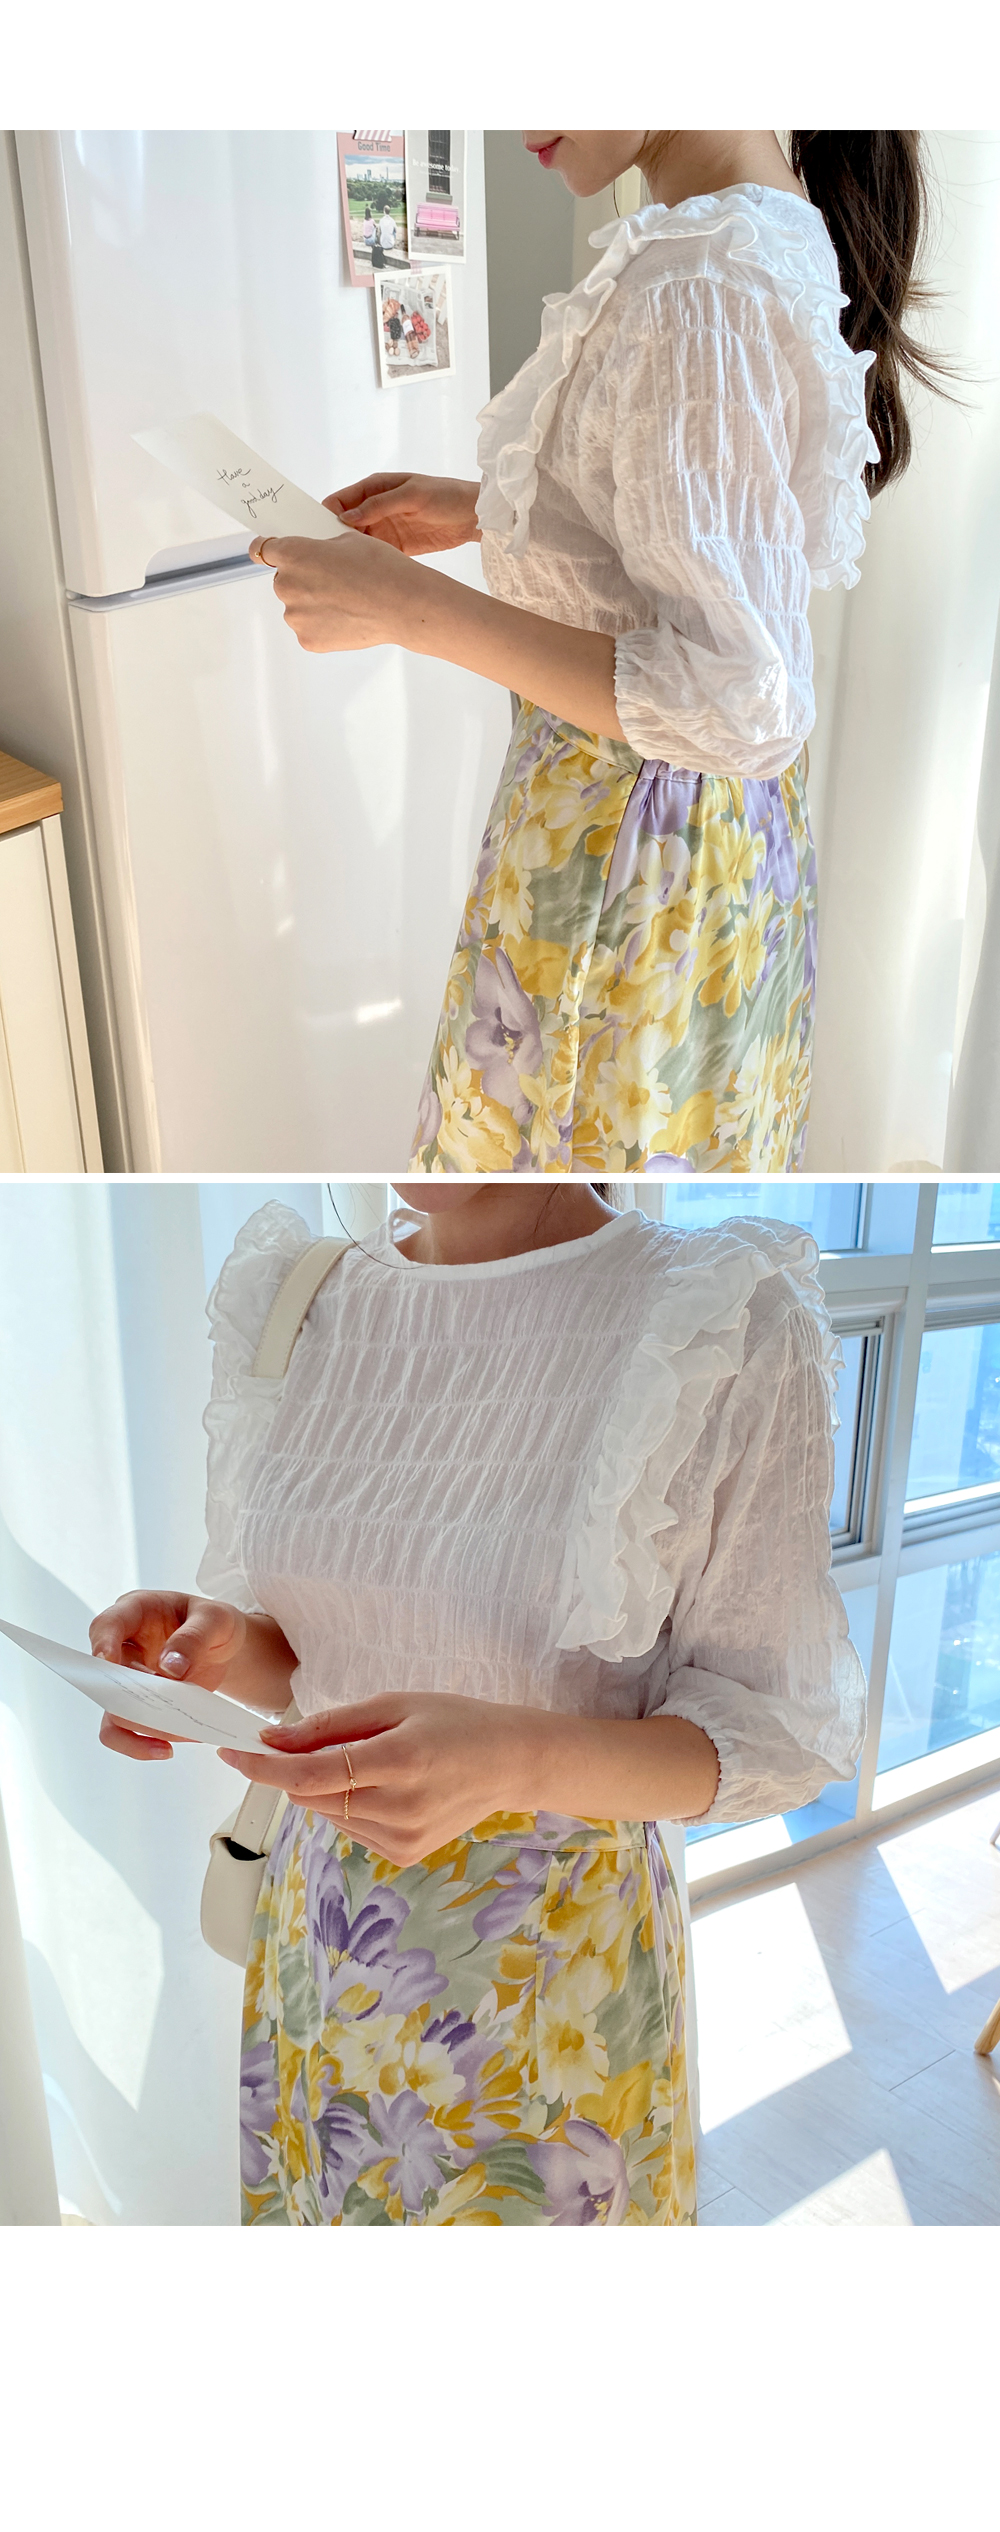 Lovely embo ruffled blouse